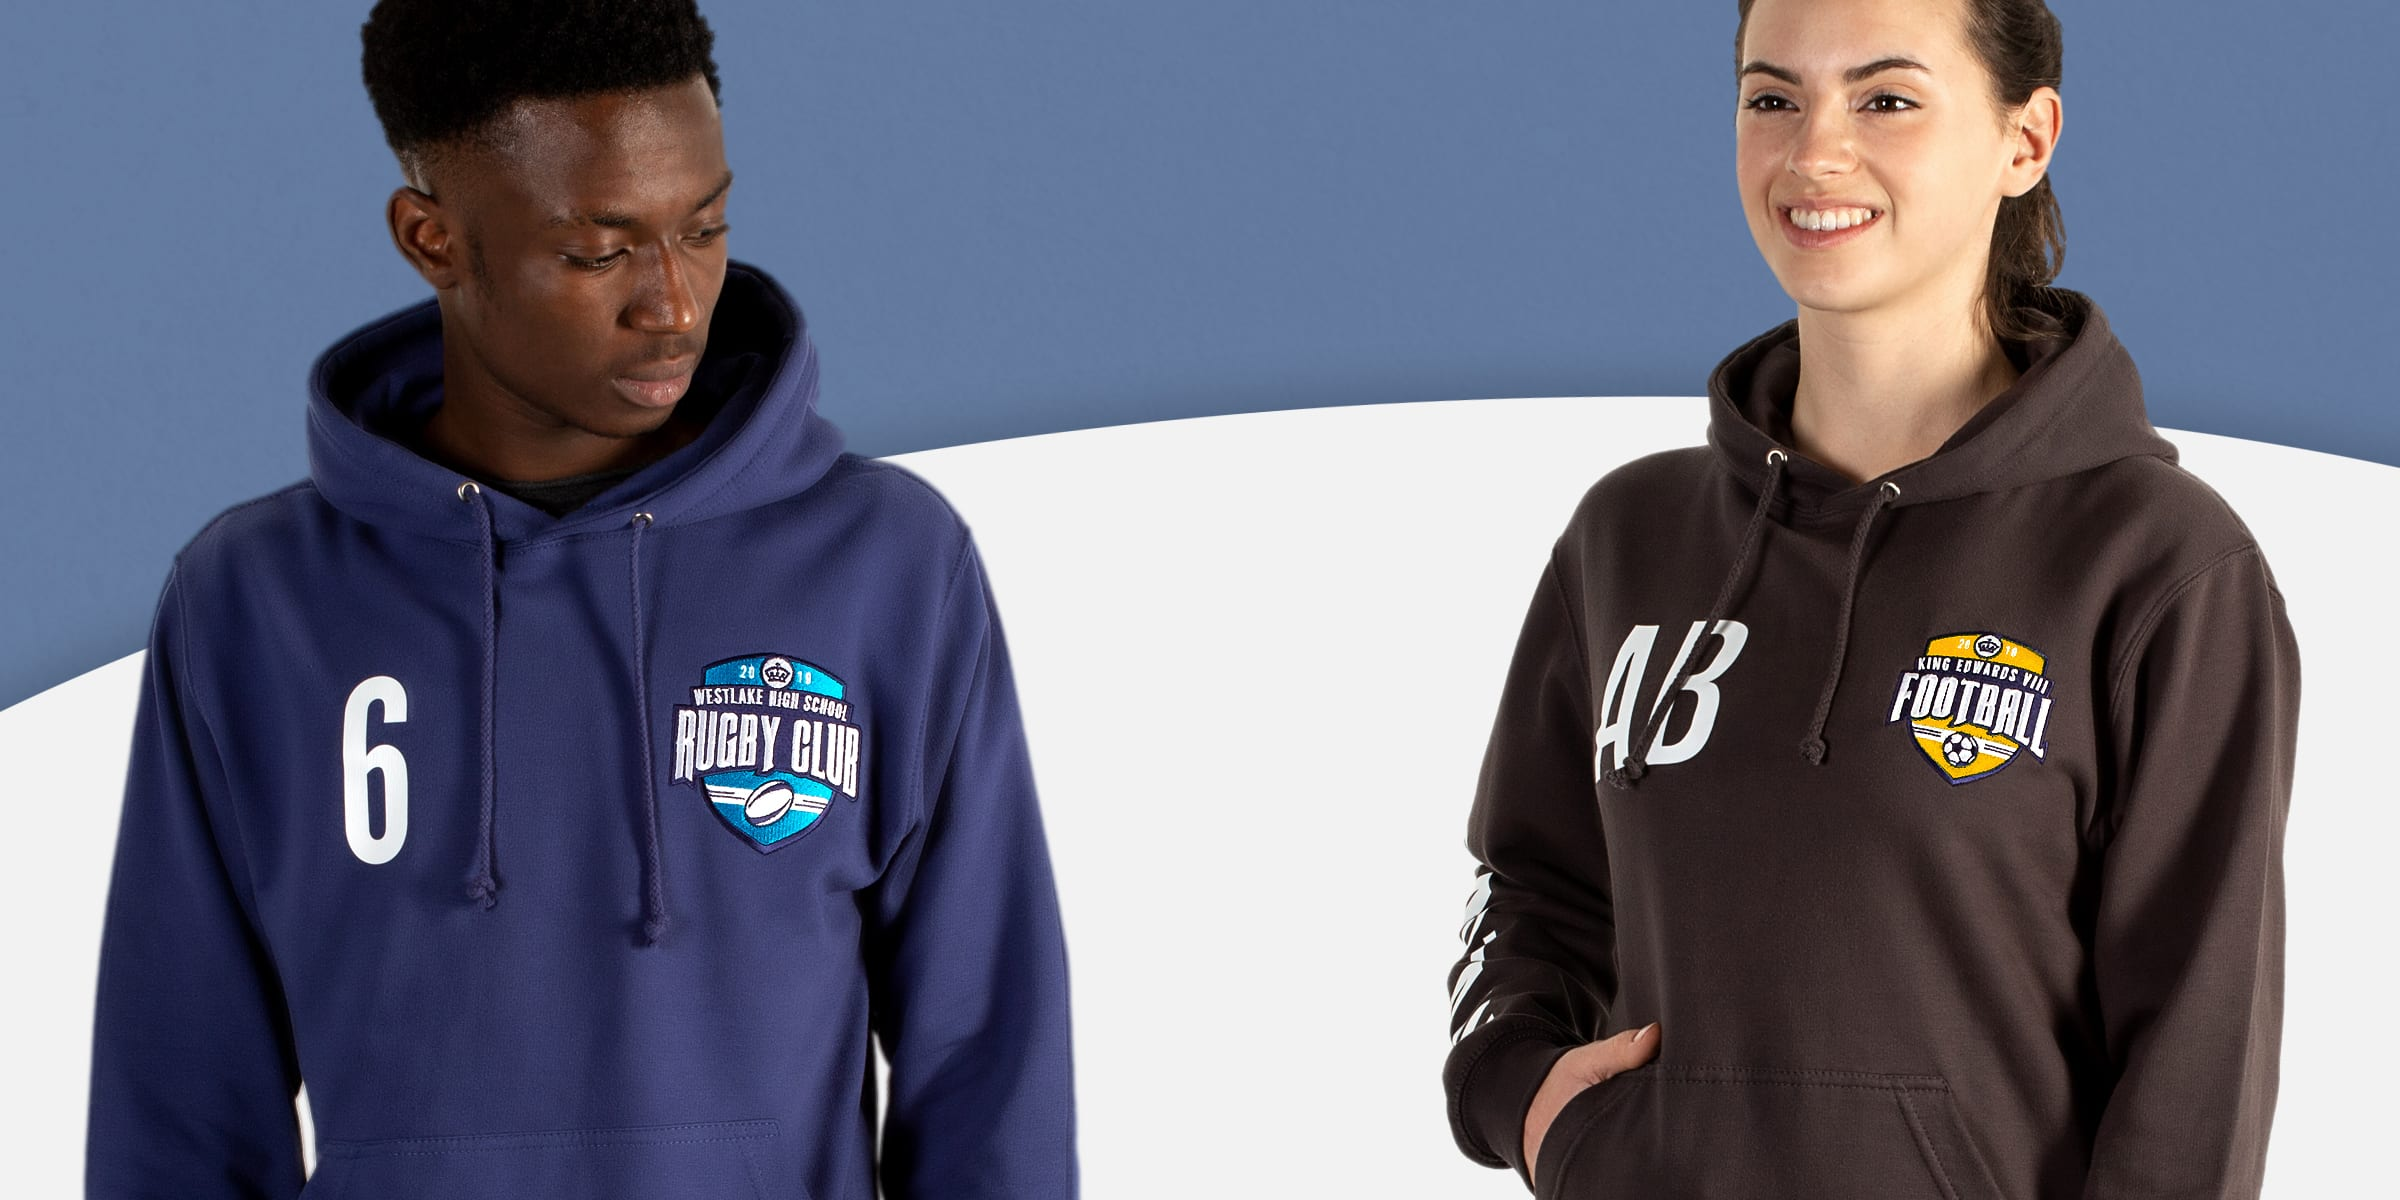 Sports teamwear hoodies and sweatshirts with names, nicknames, initials and personalisation